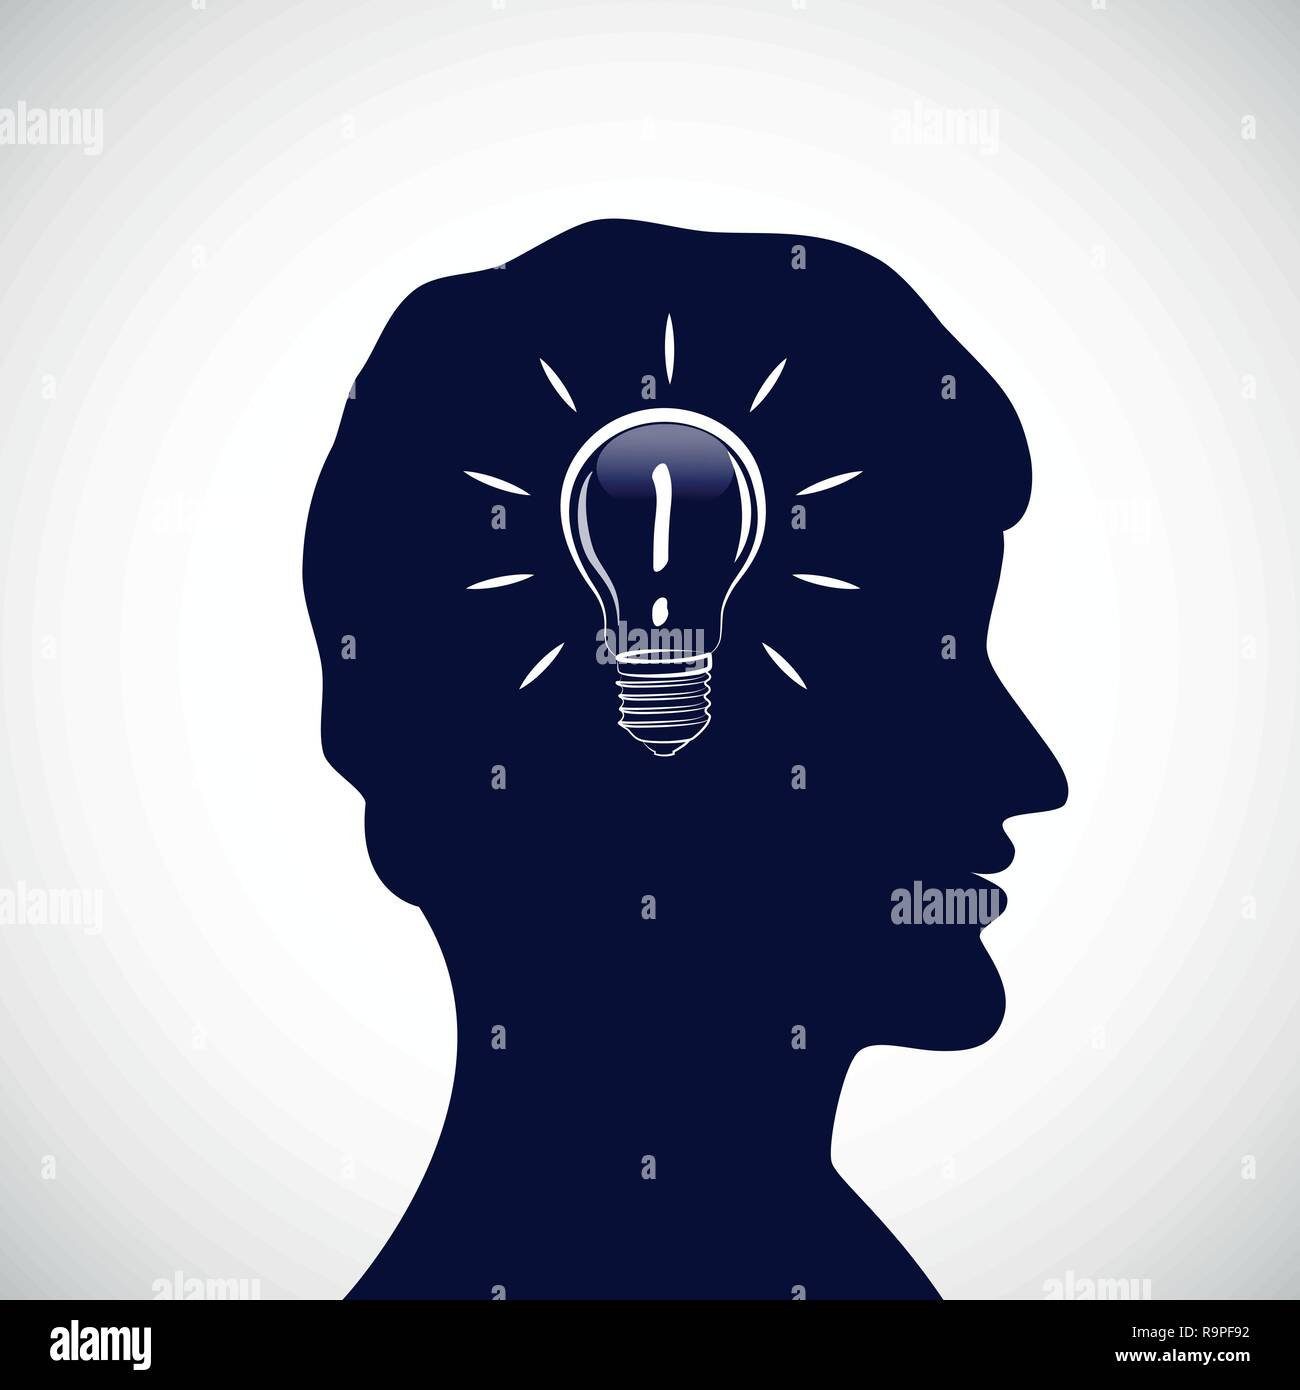 man with good idea silhouette vector illustration - Stock Image